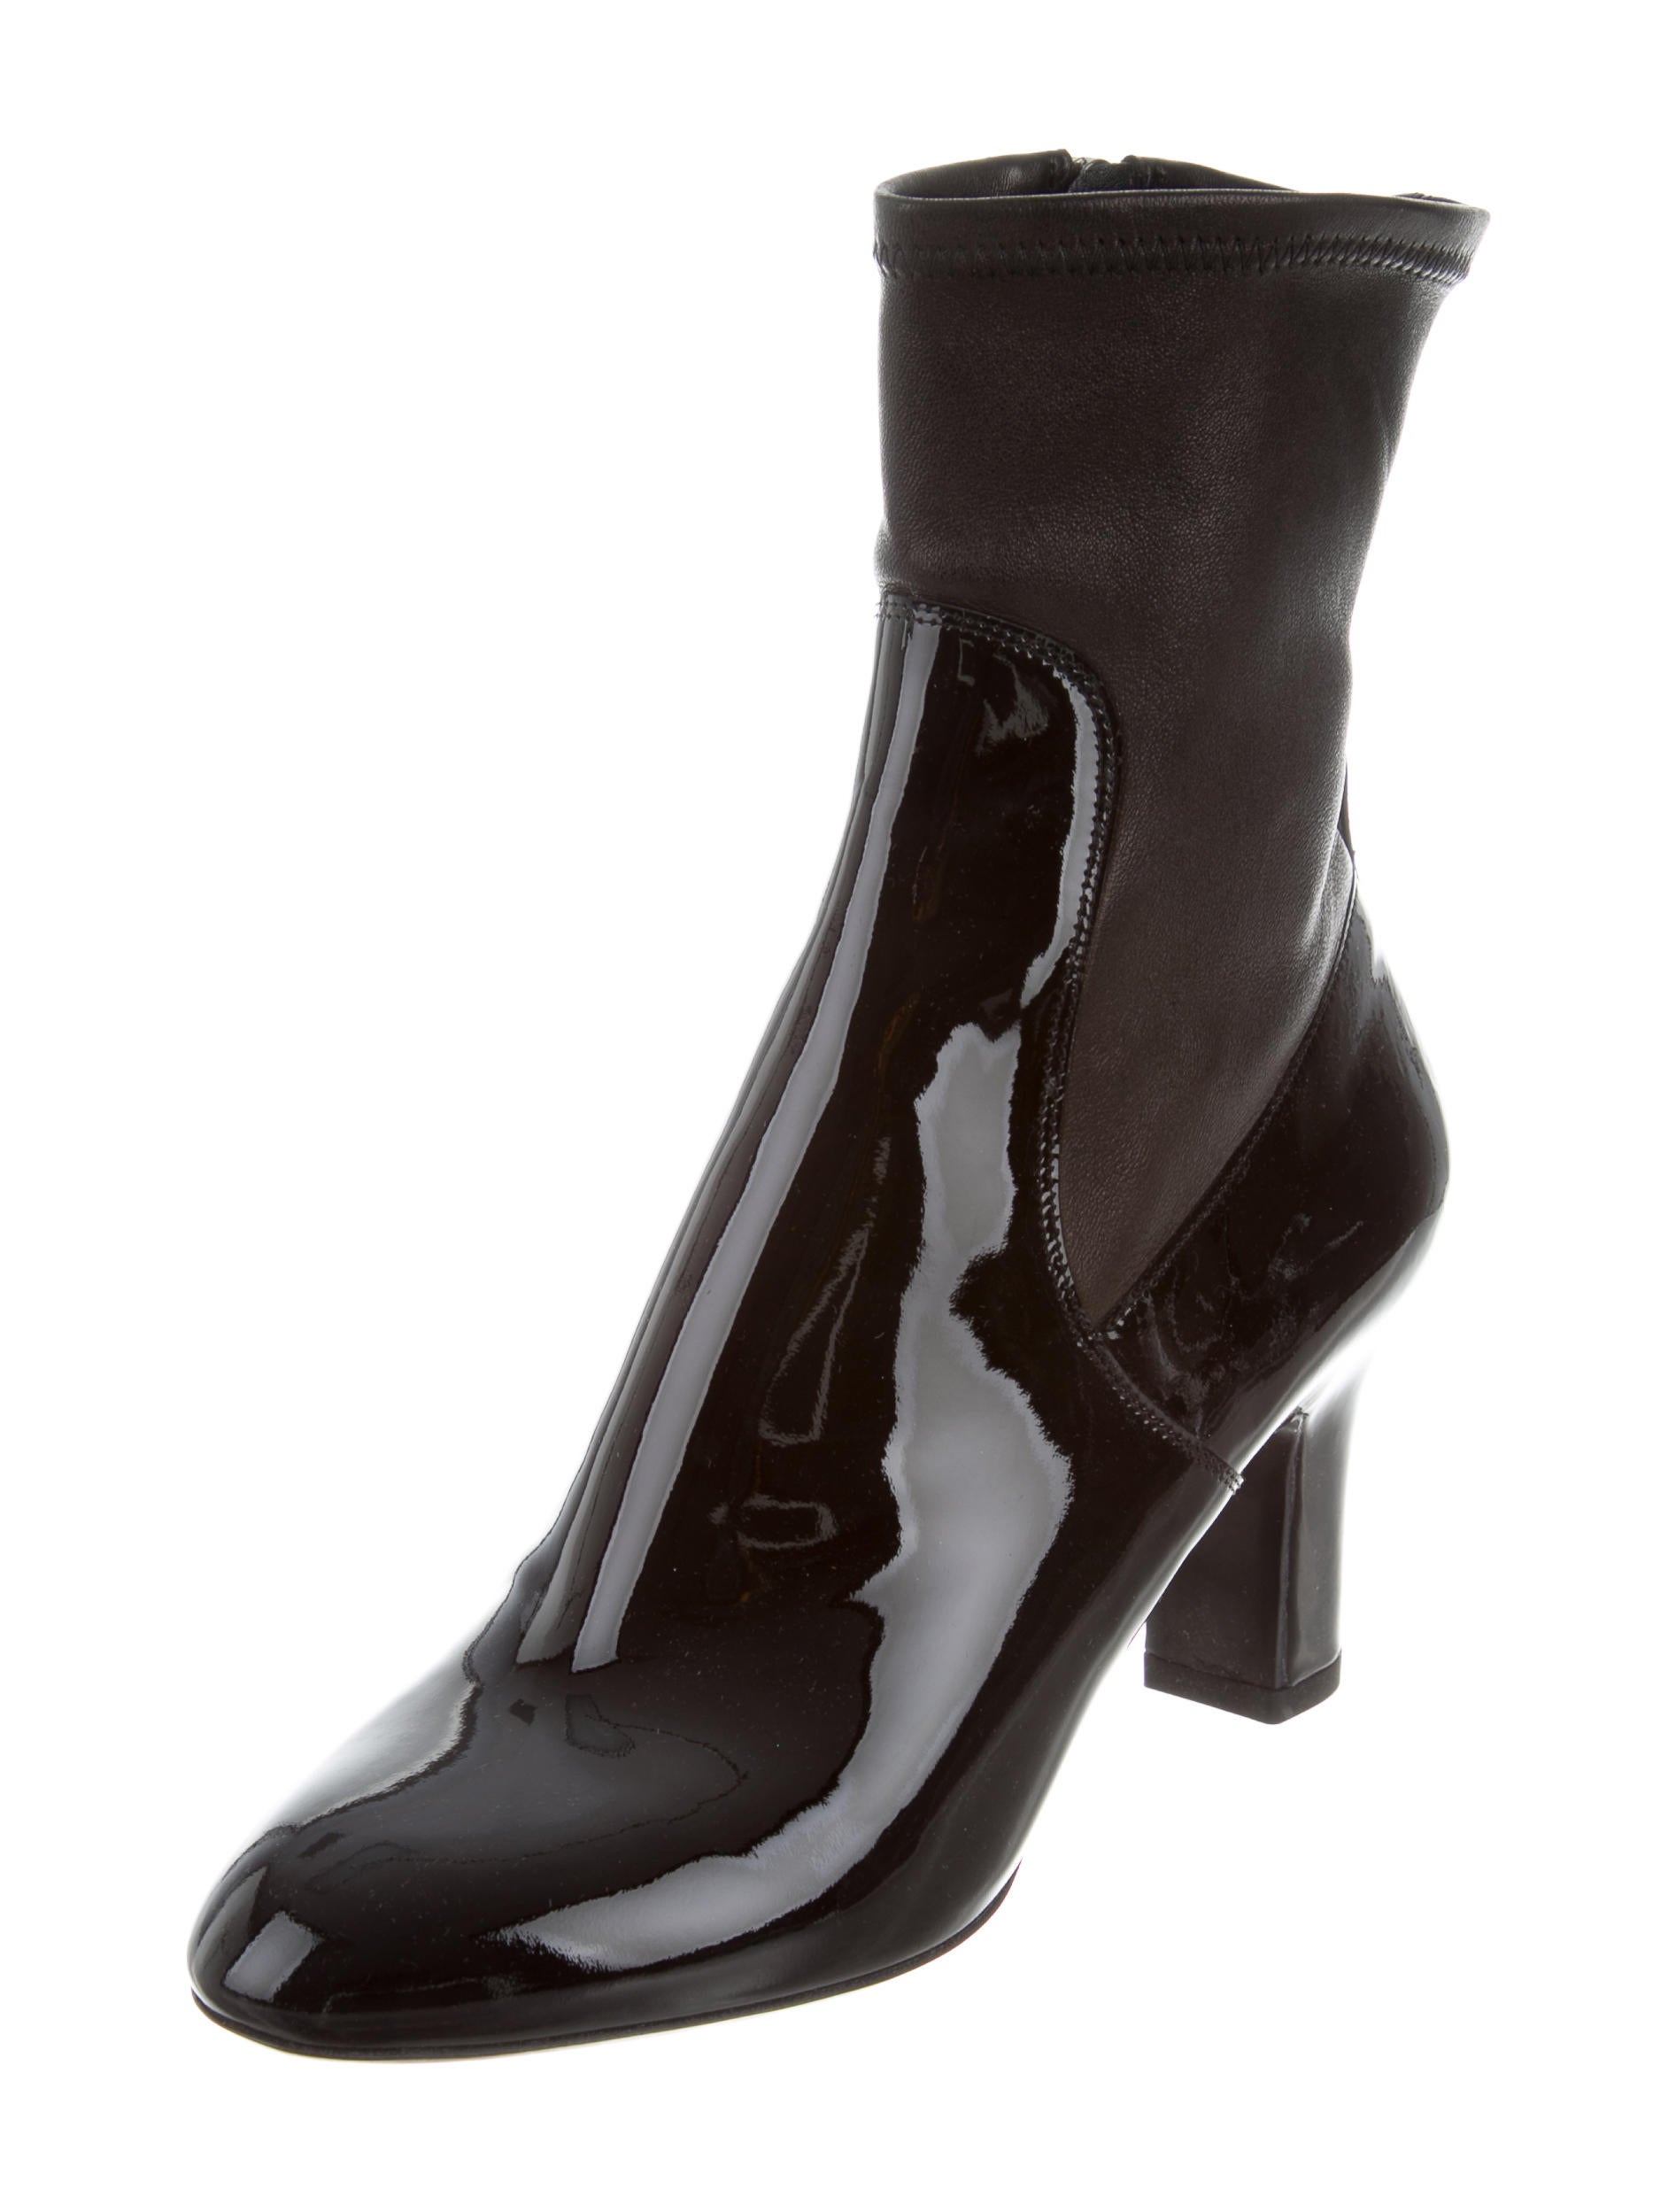 louis vuitton patent leather ankle boots shoes